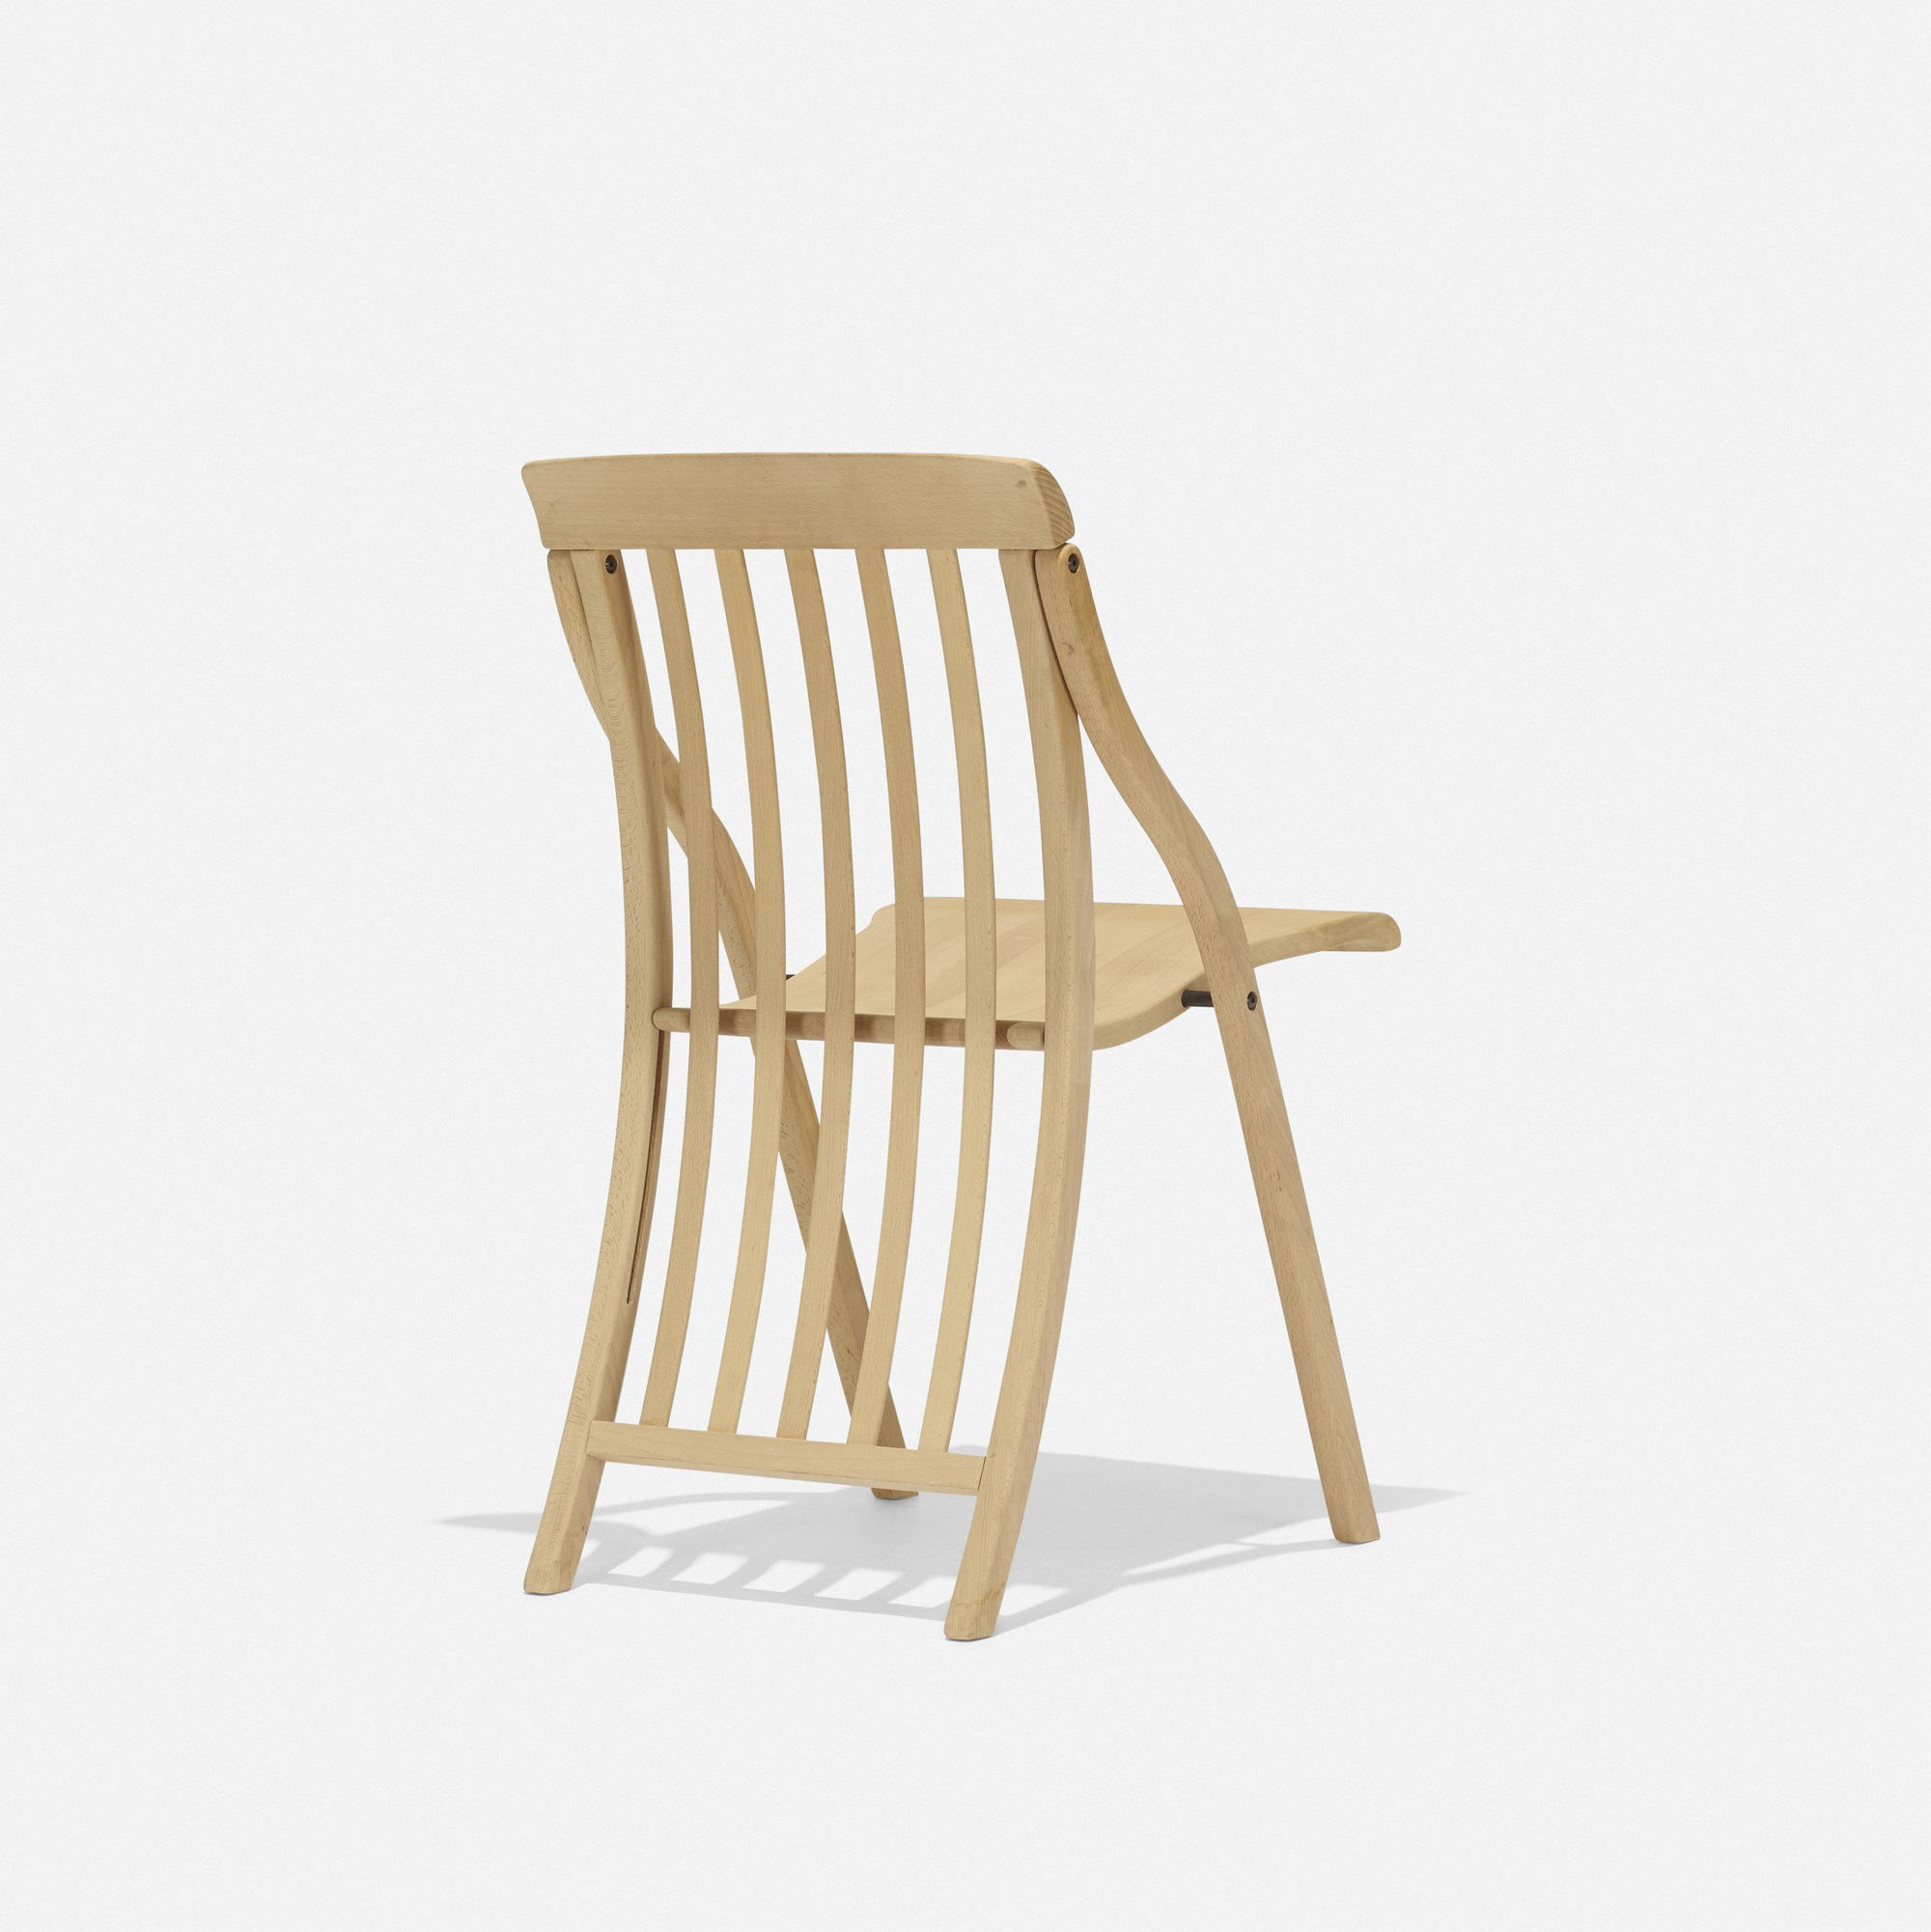 355: Michele de Lucchi / Sedia folding chair (1 of 3)